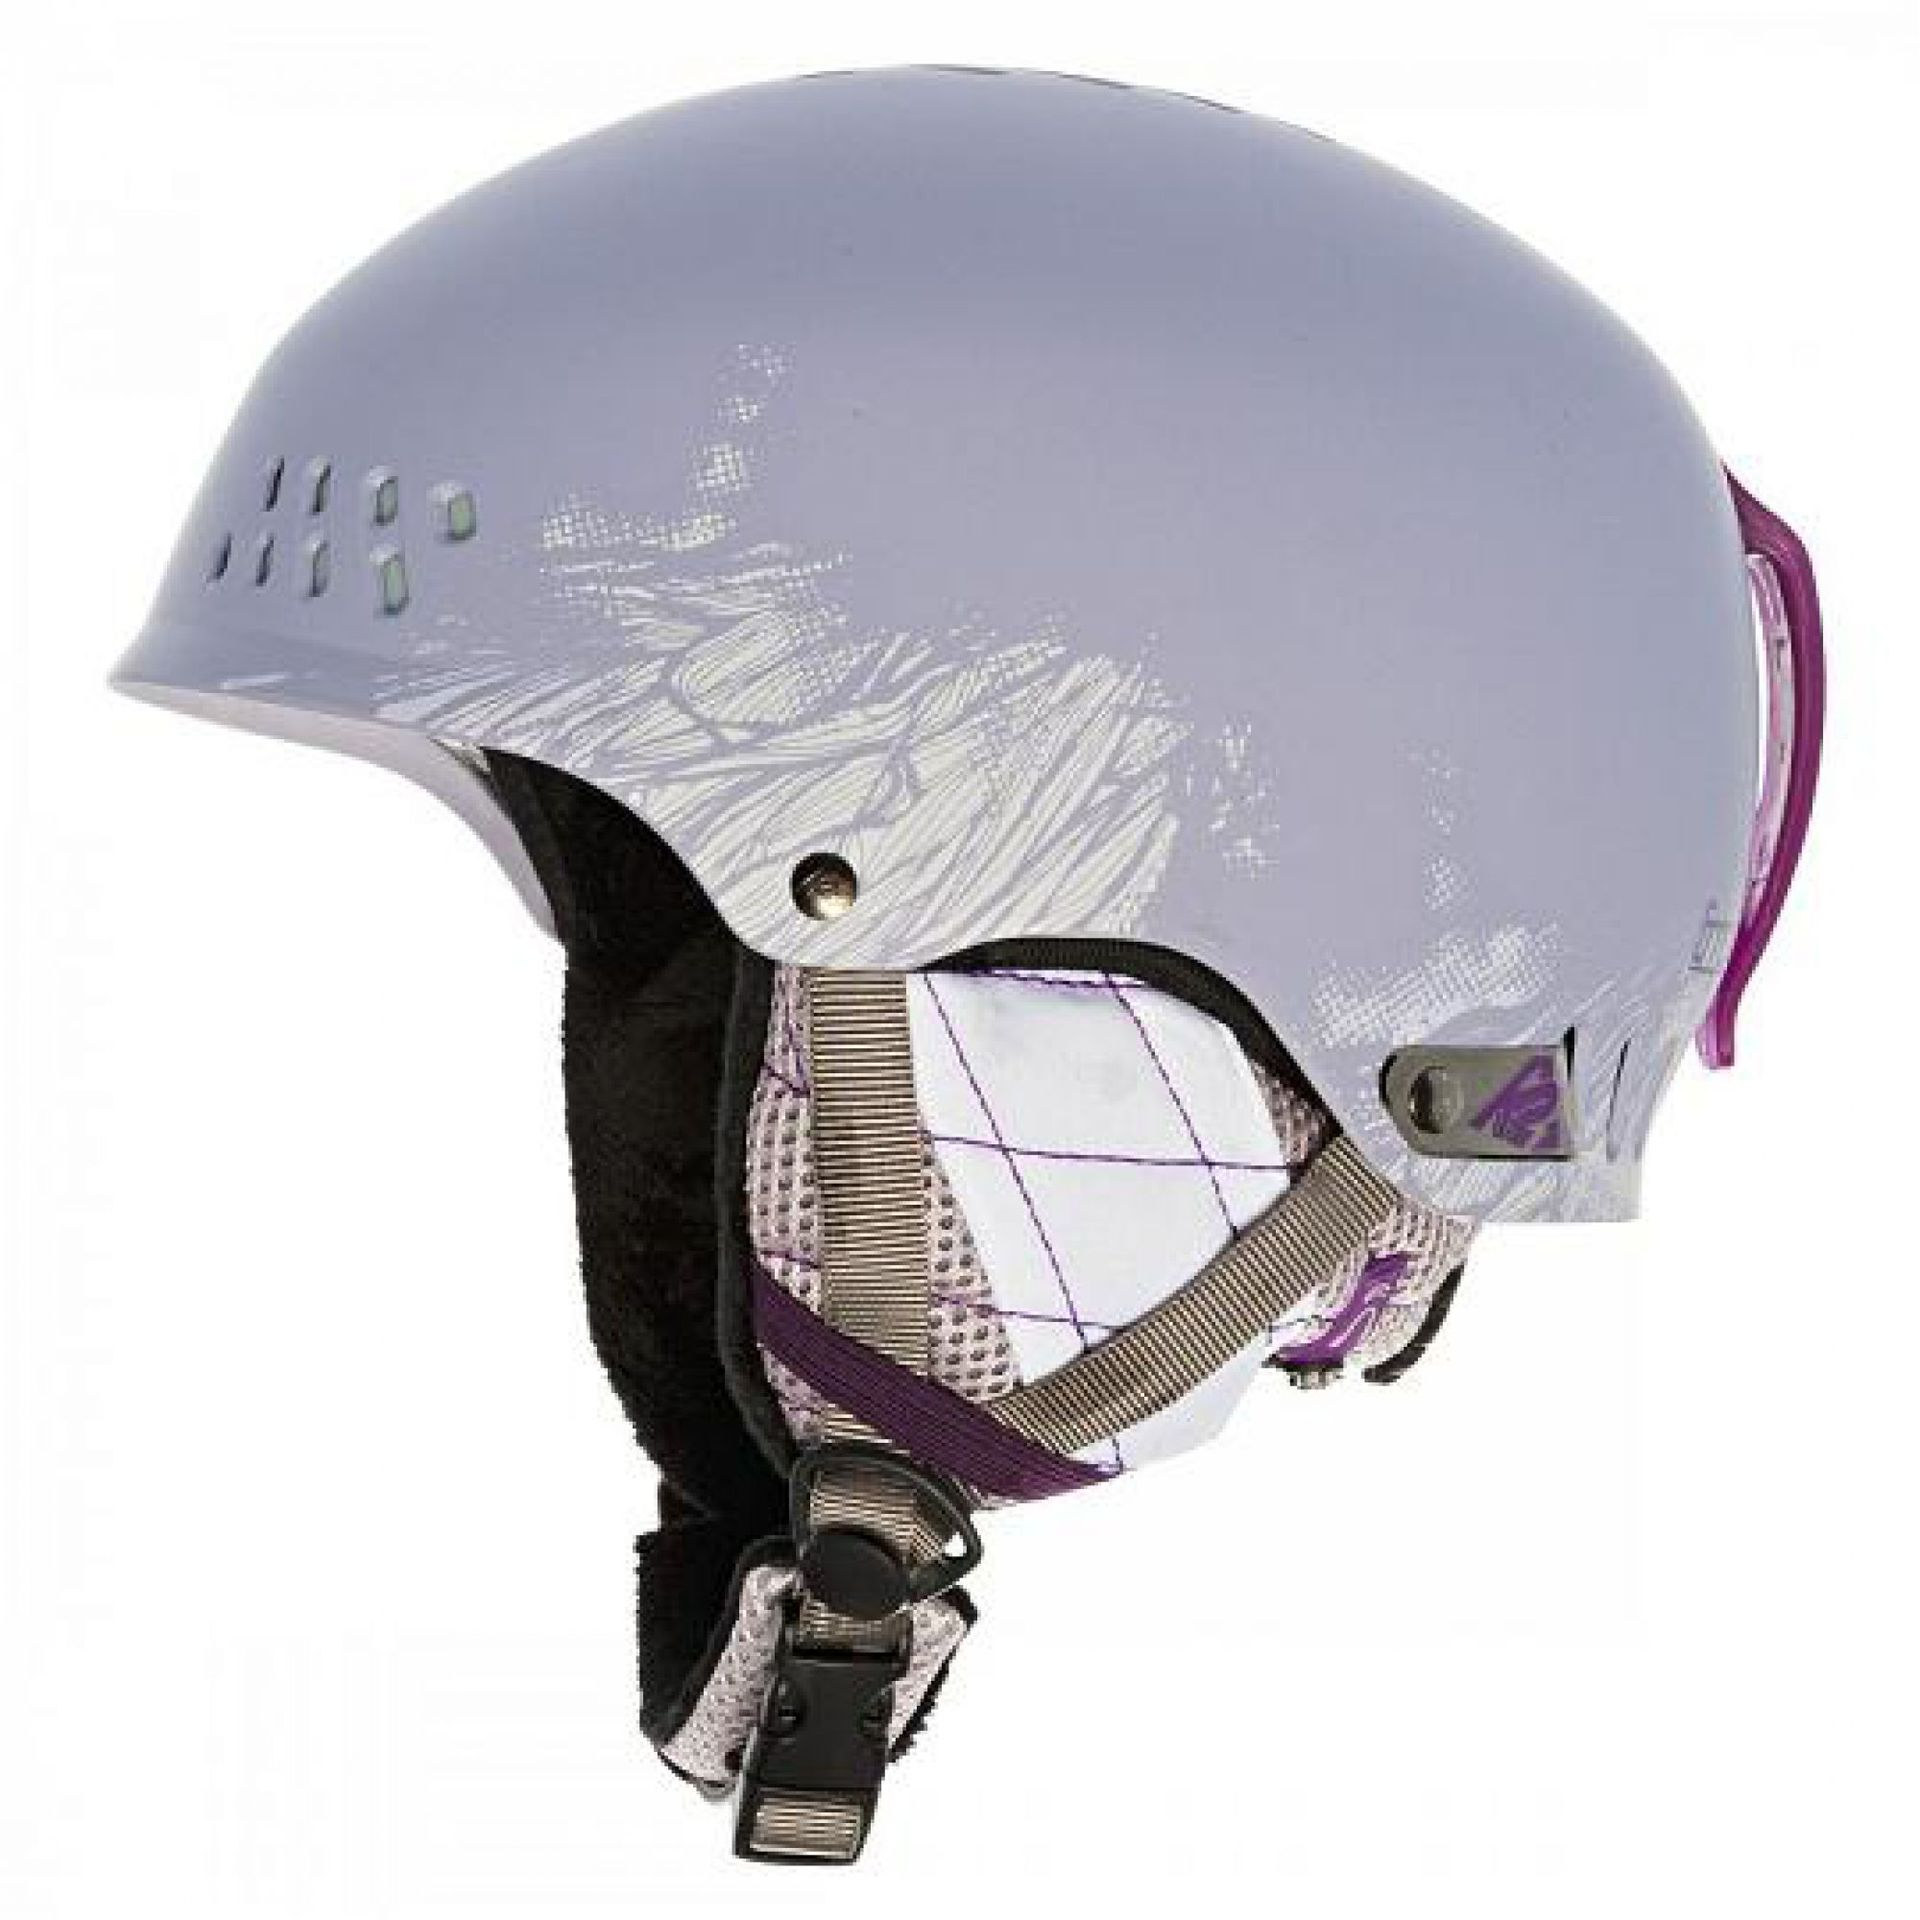 KASK K2 EMPHASIS FIOLETOWY